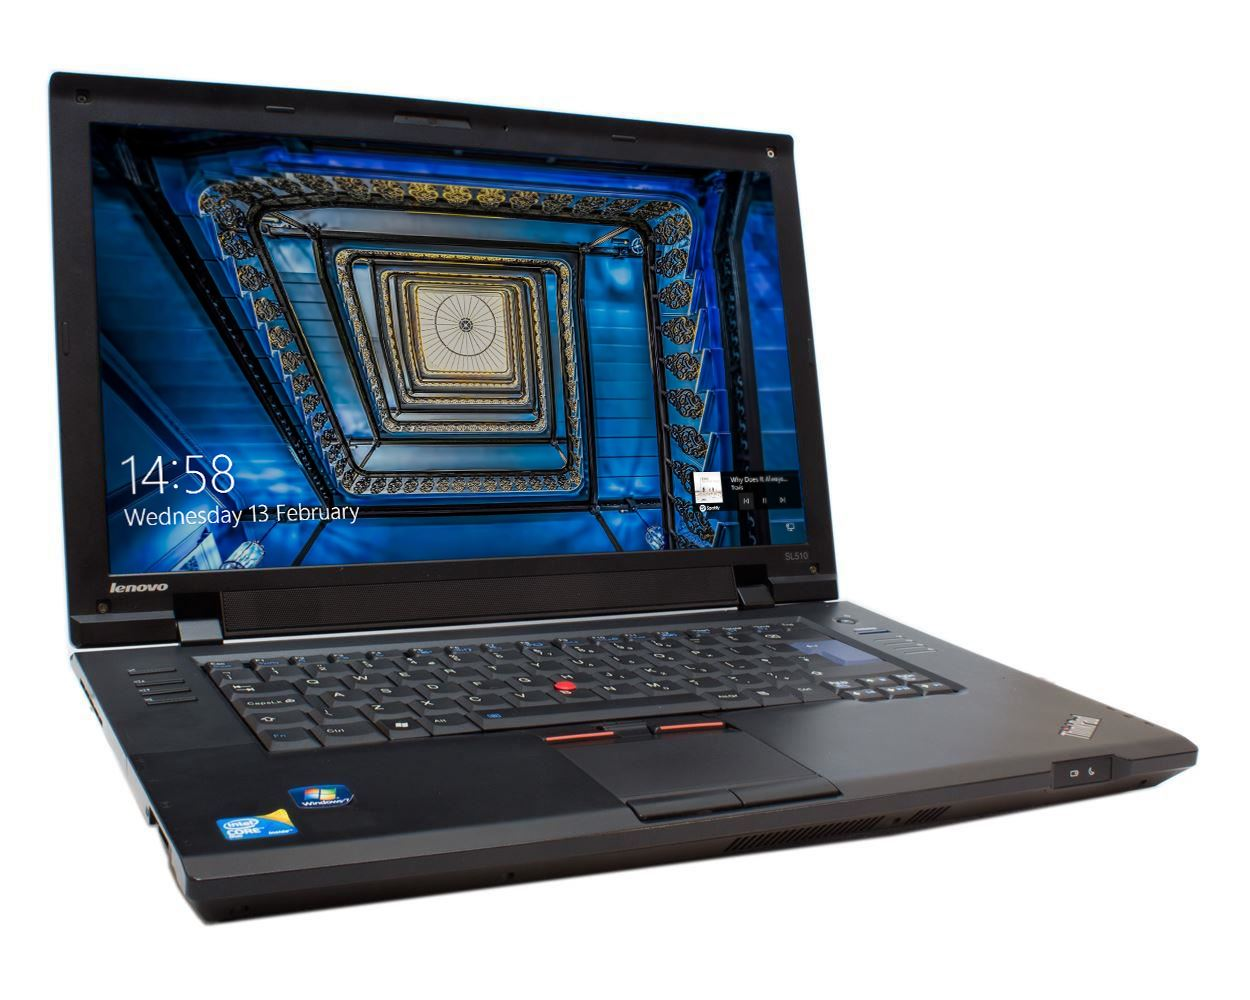 Details about Lenovo ThinkPad SL510 Laptop  be231c280b